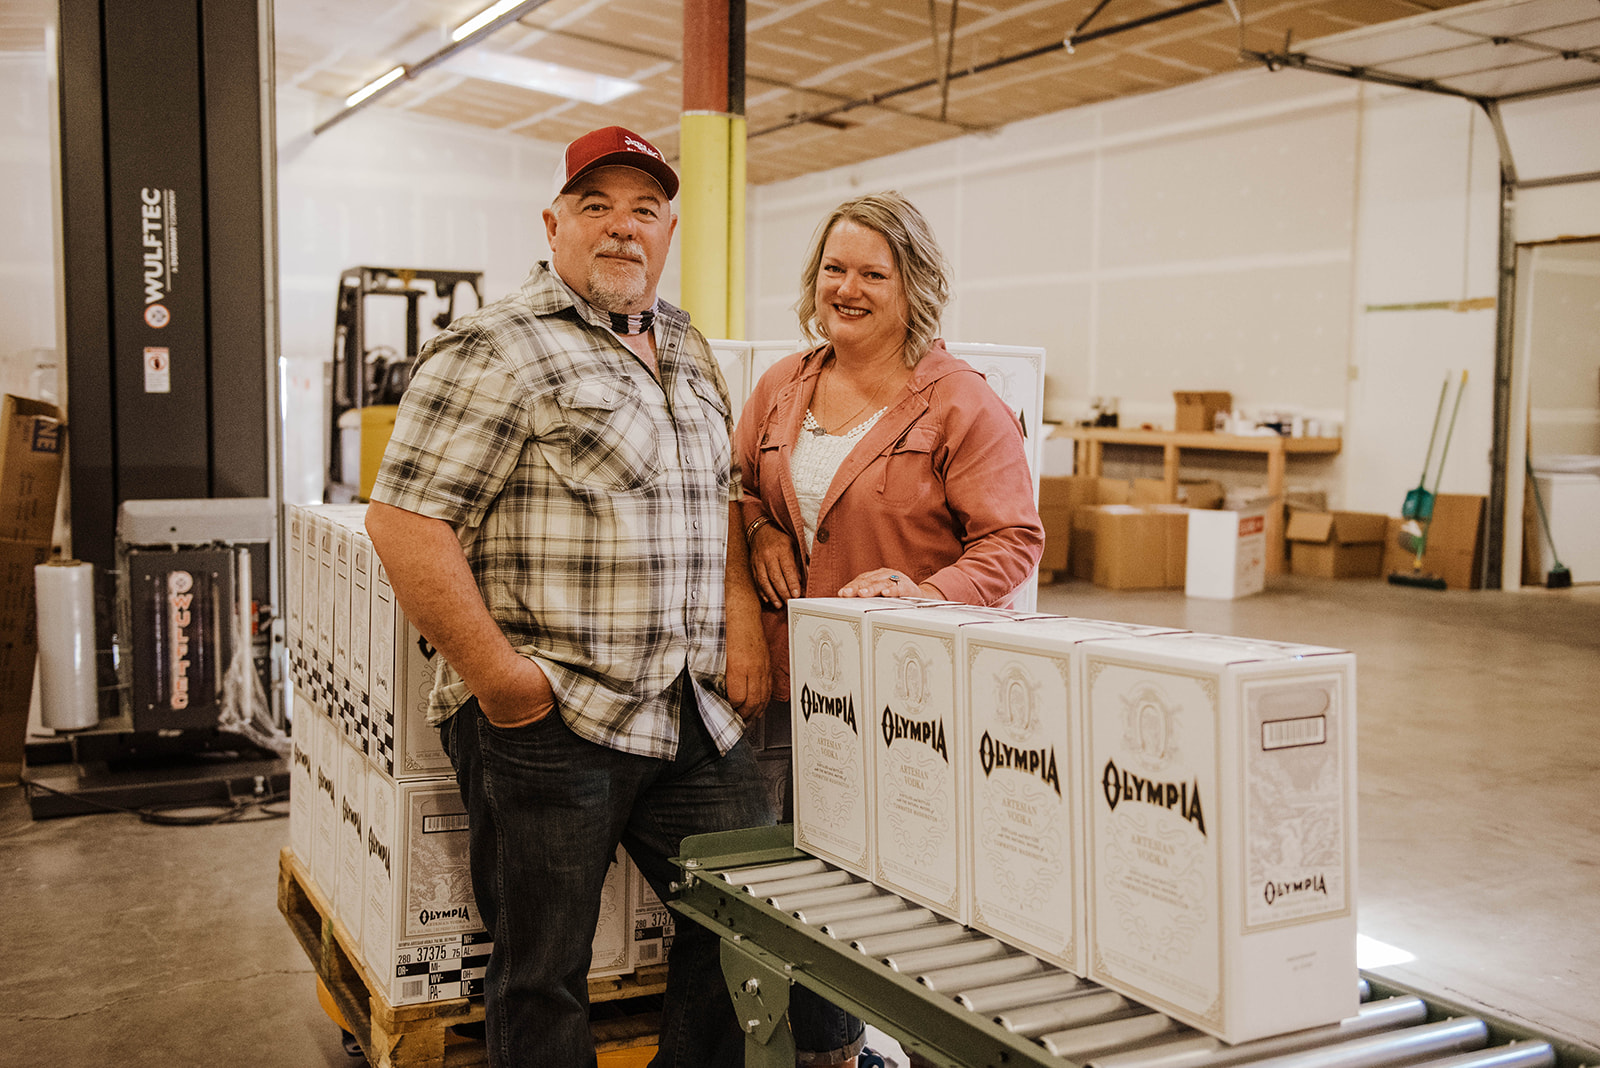 Olympia Master Distillers - Ray Watson and Lesa Givens packaging Olympia Artesian Vodka.(image courtesy of Sarah Russell)